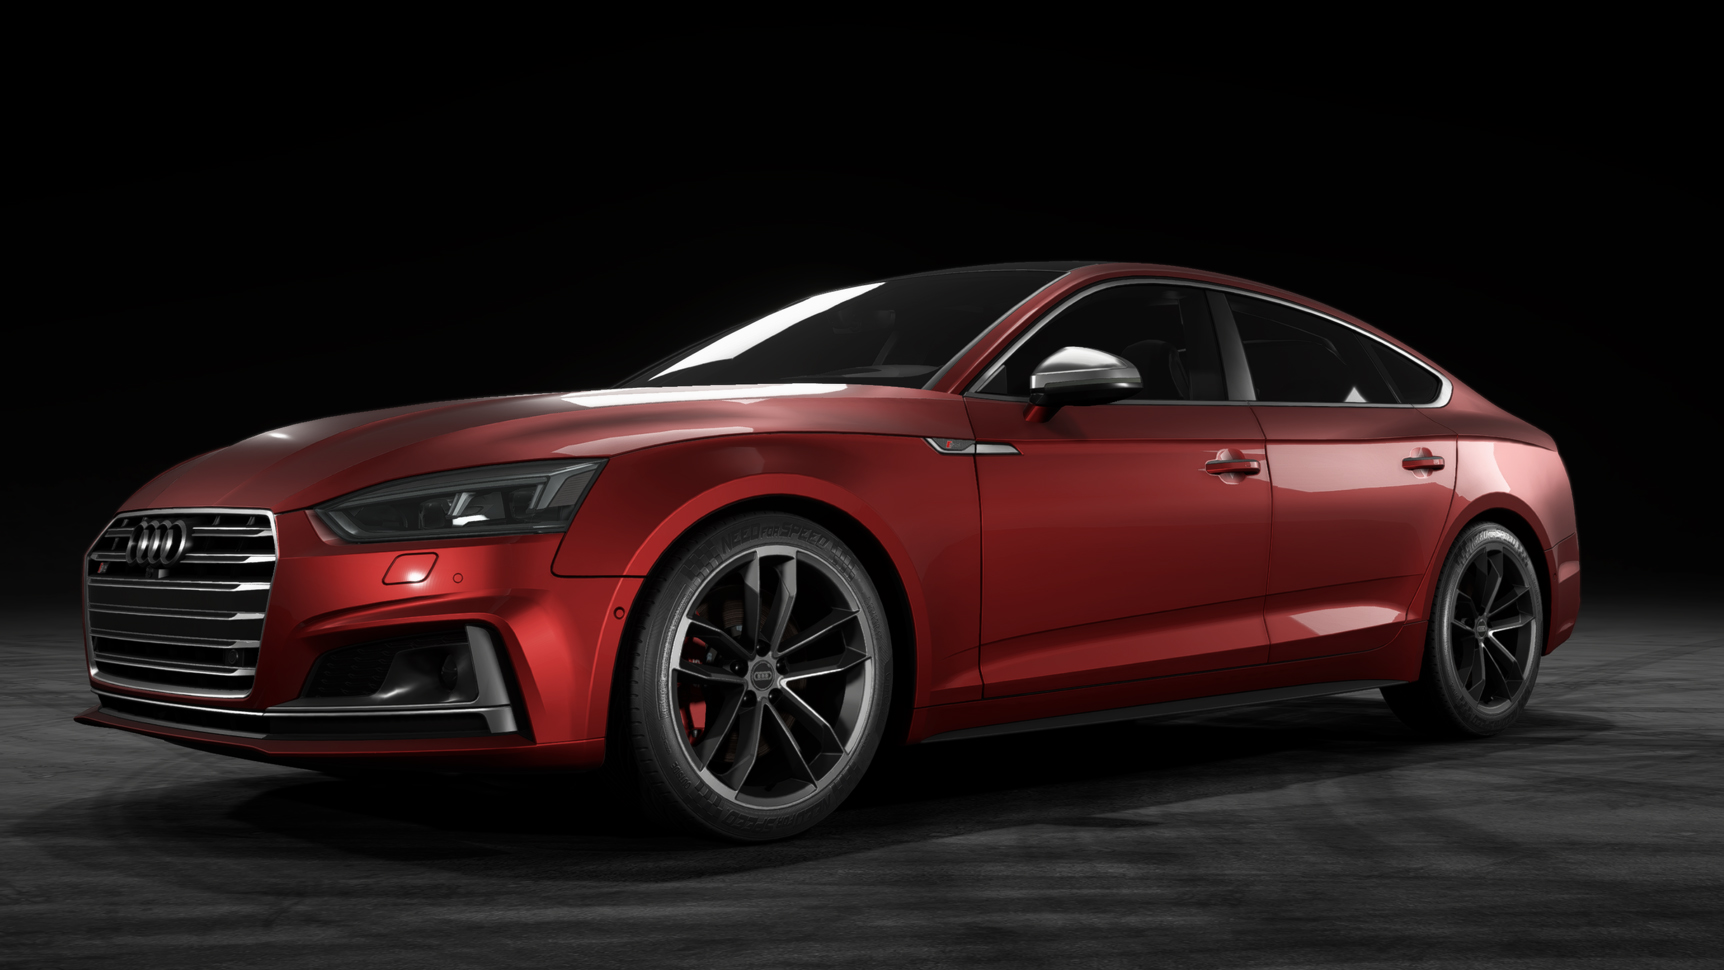 Audi S5 Sportback (B9) | Need for Speed Wiki | FANDOM powered by Wikia